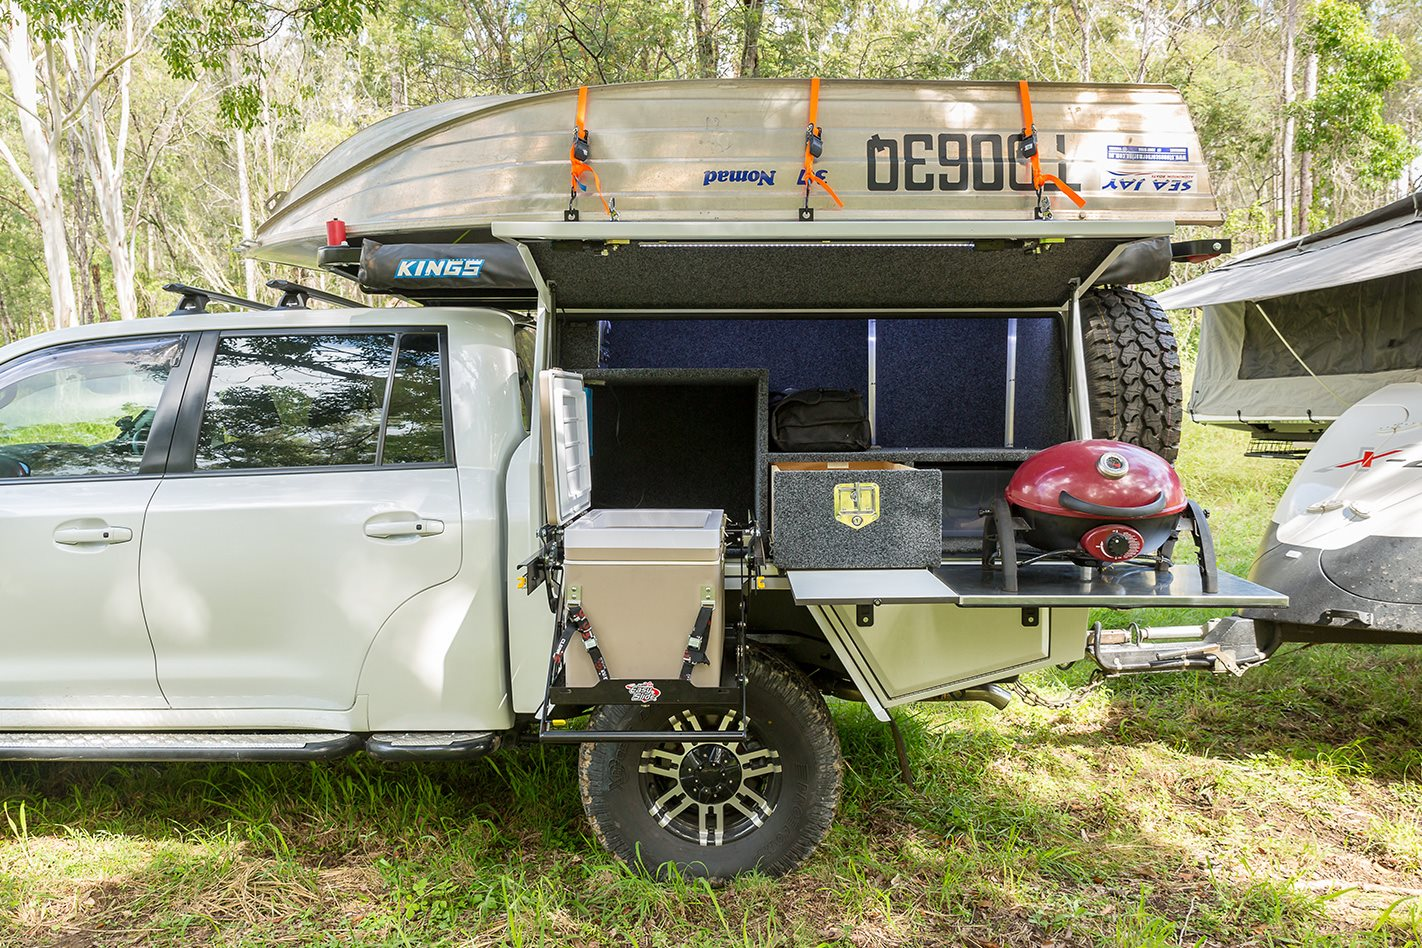 Custom Land Cruiser 200 Series carriage set-up